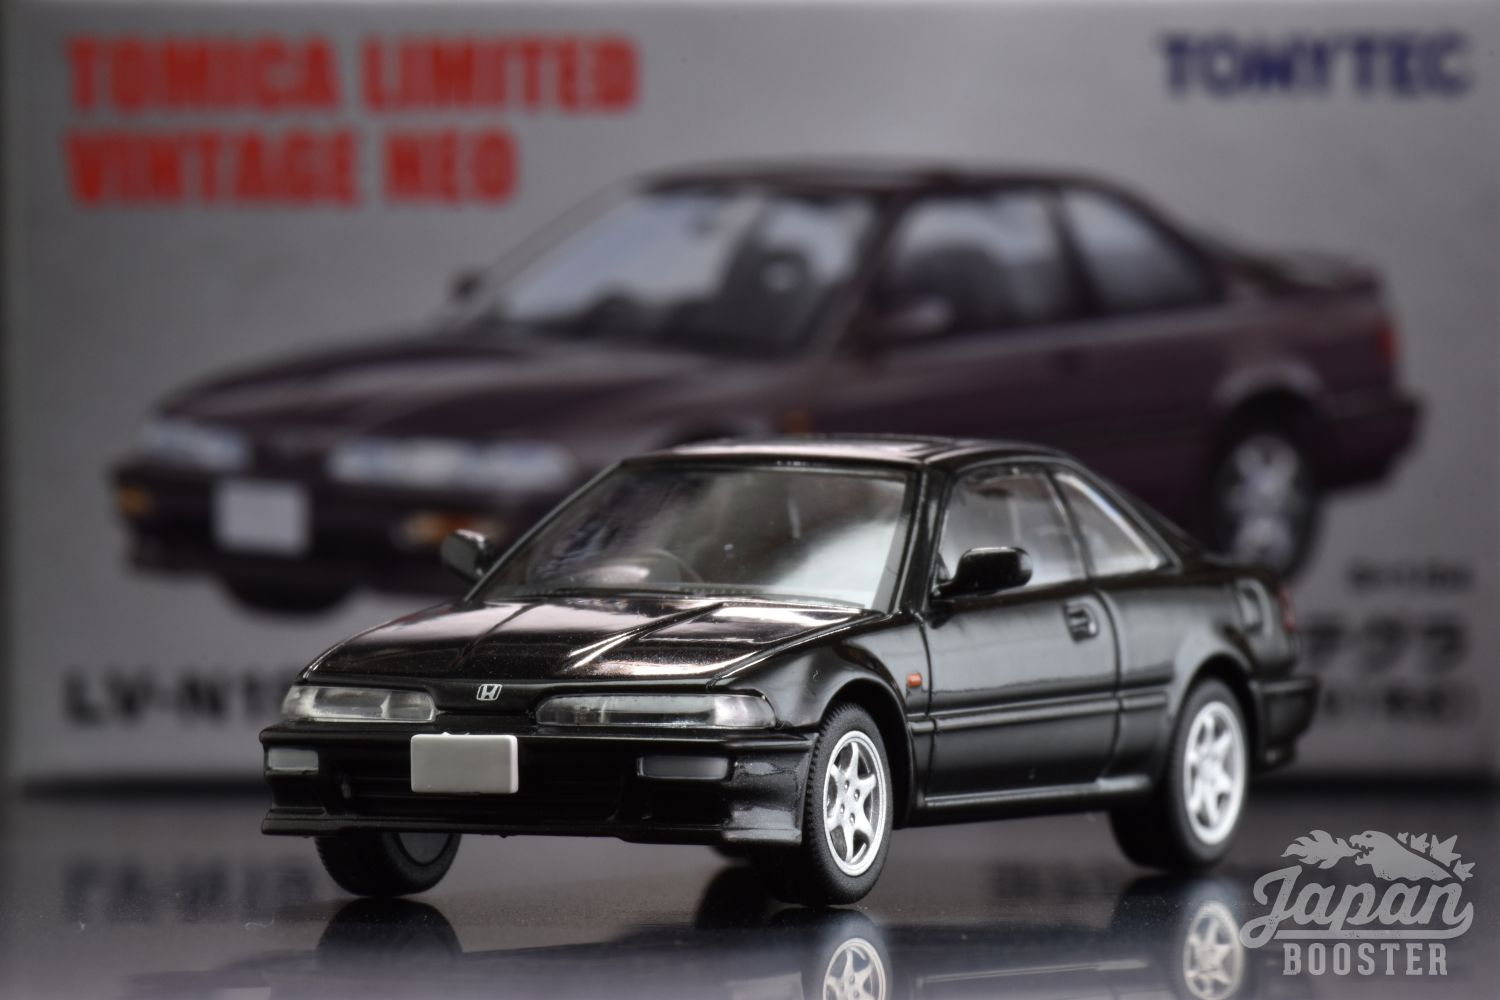 Black Tomica Limited Vintage NEO LV-N197b Honda Integra 3-door Coupe XSi